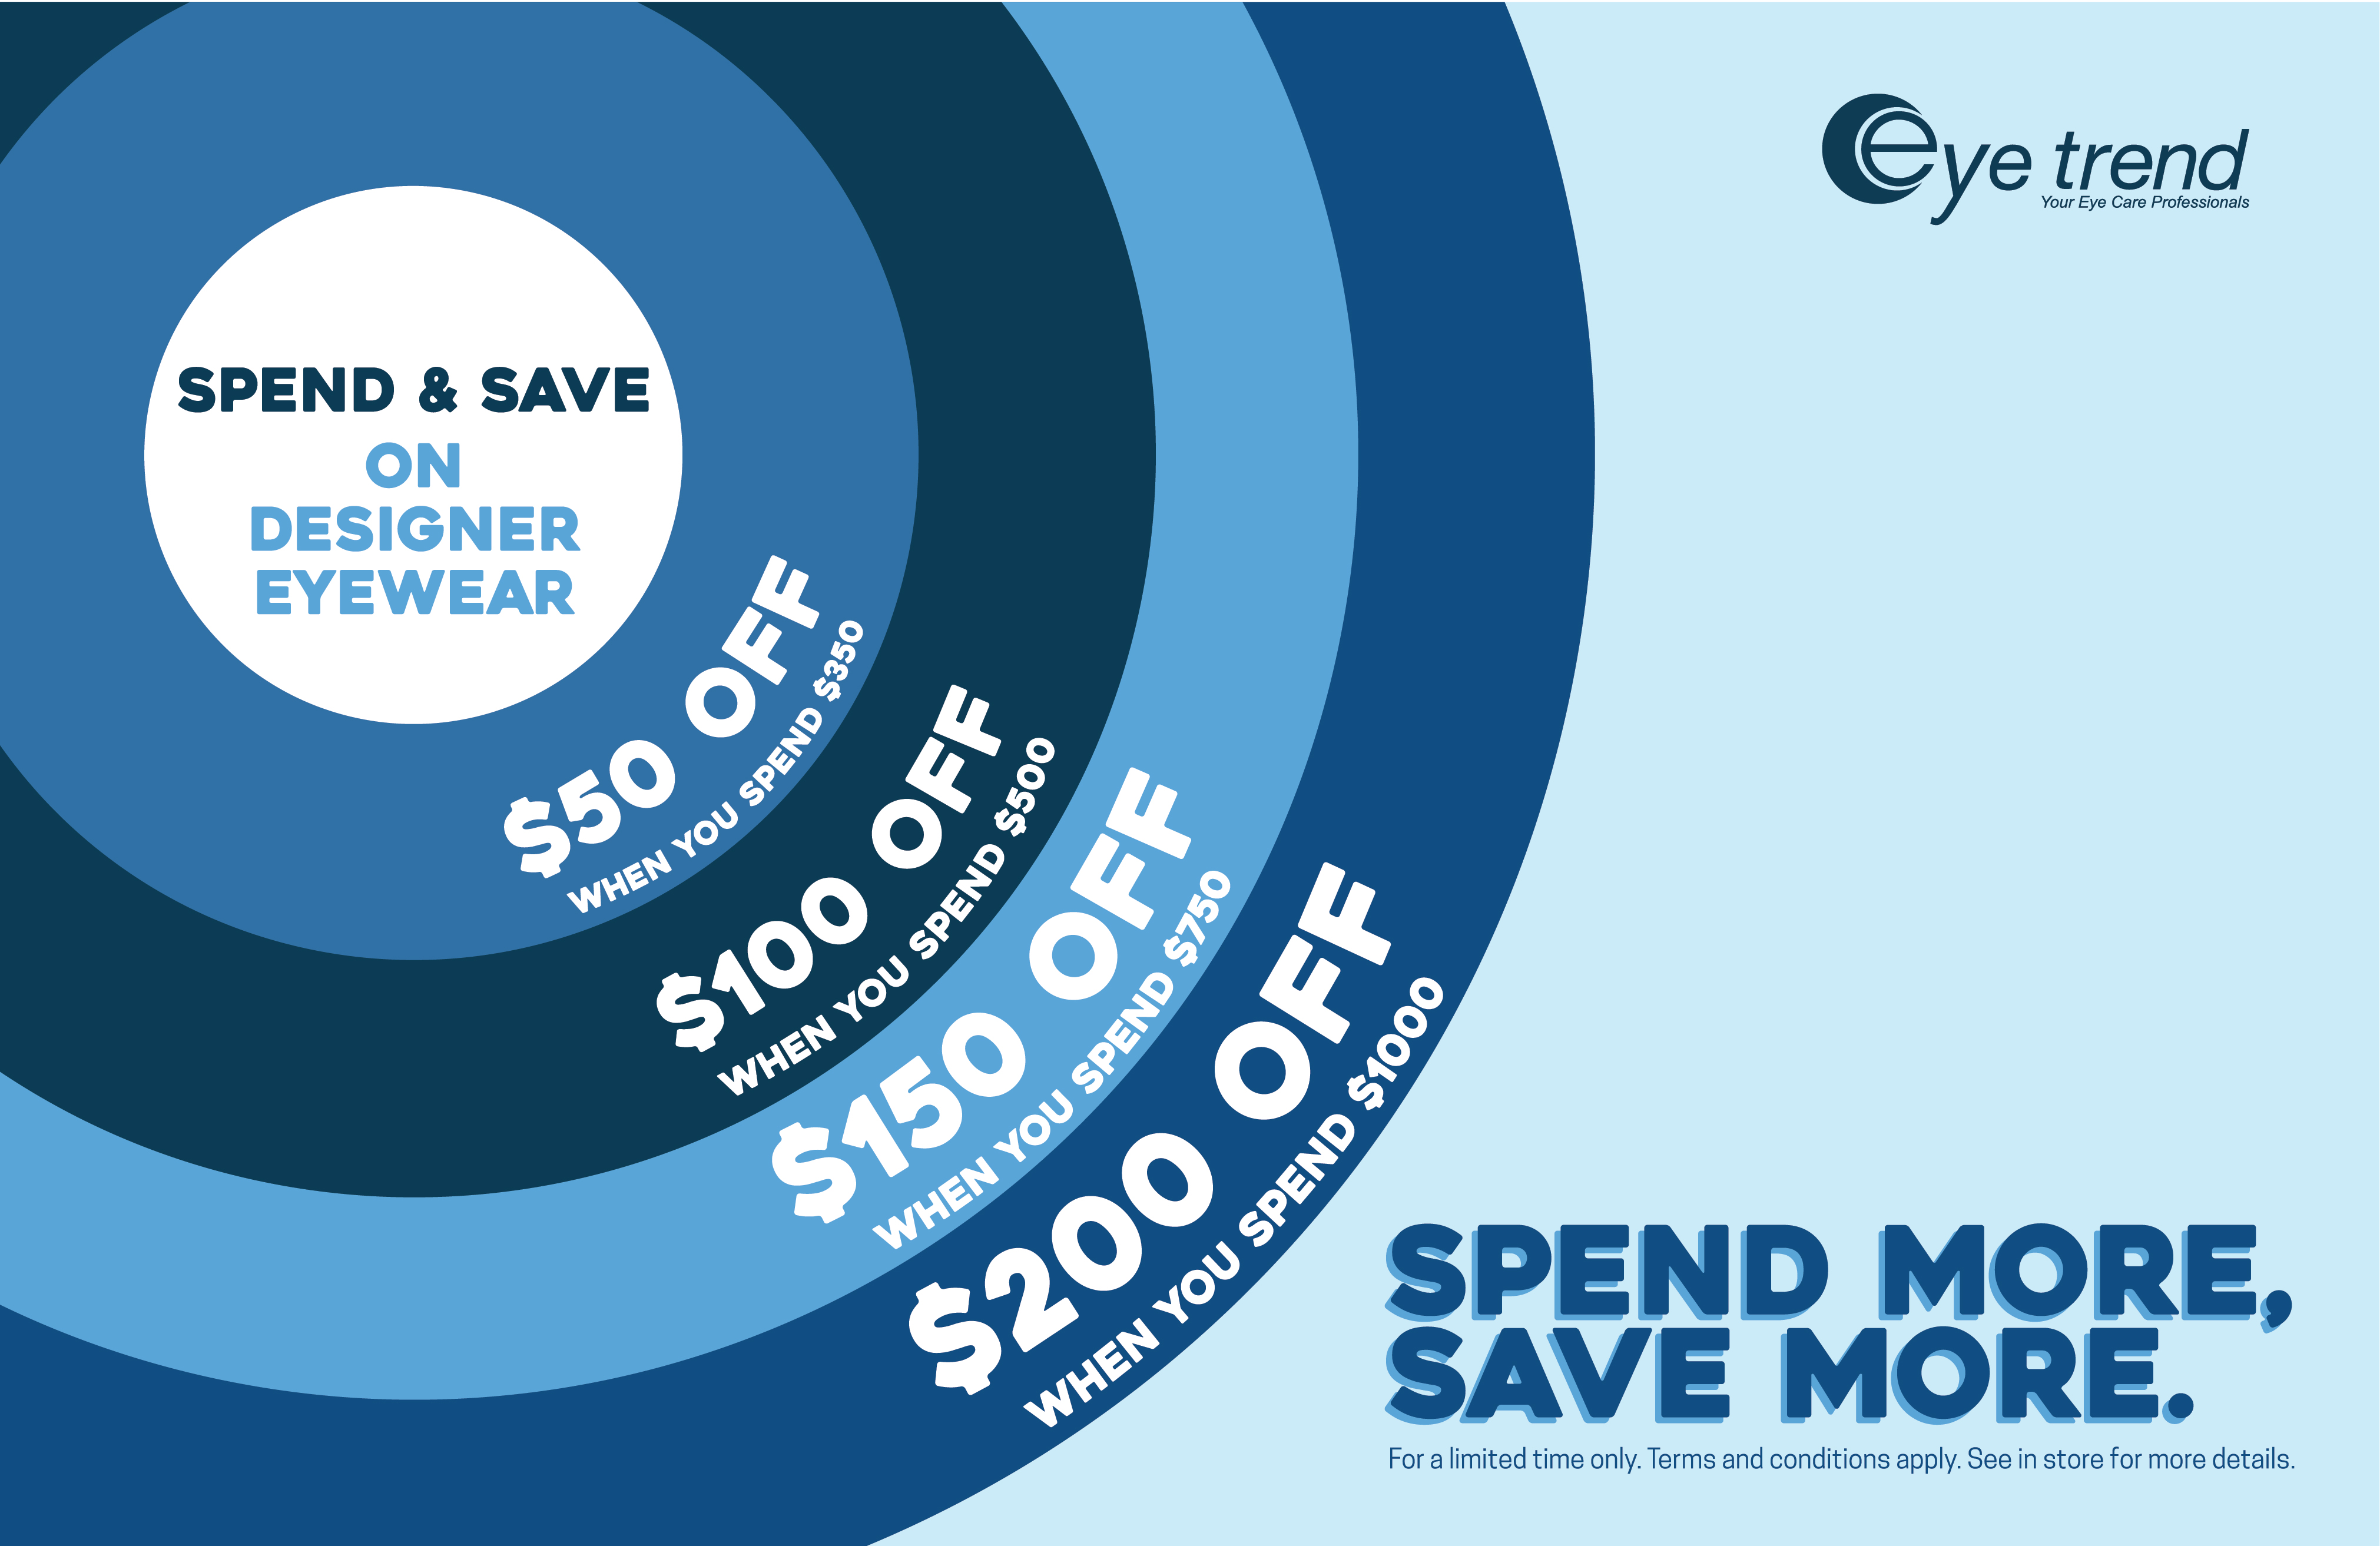 Eye Trend's Spend & Save Sale